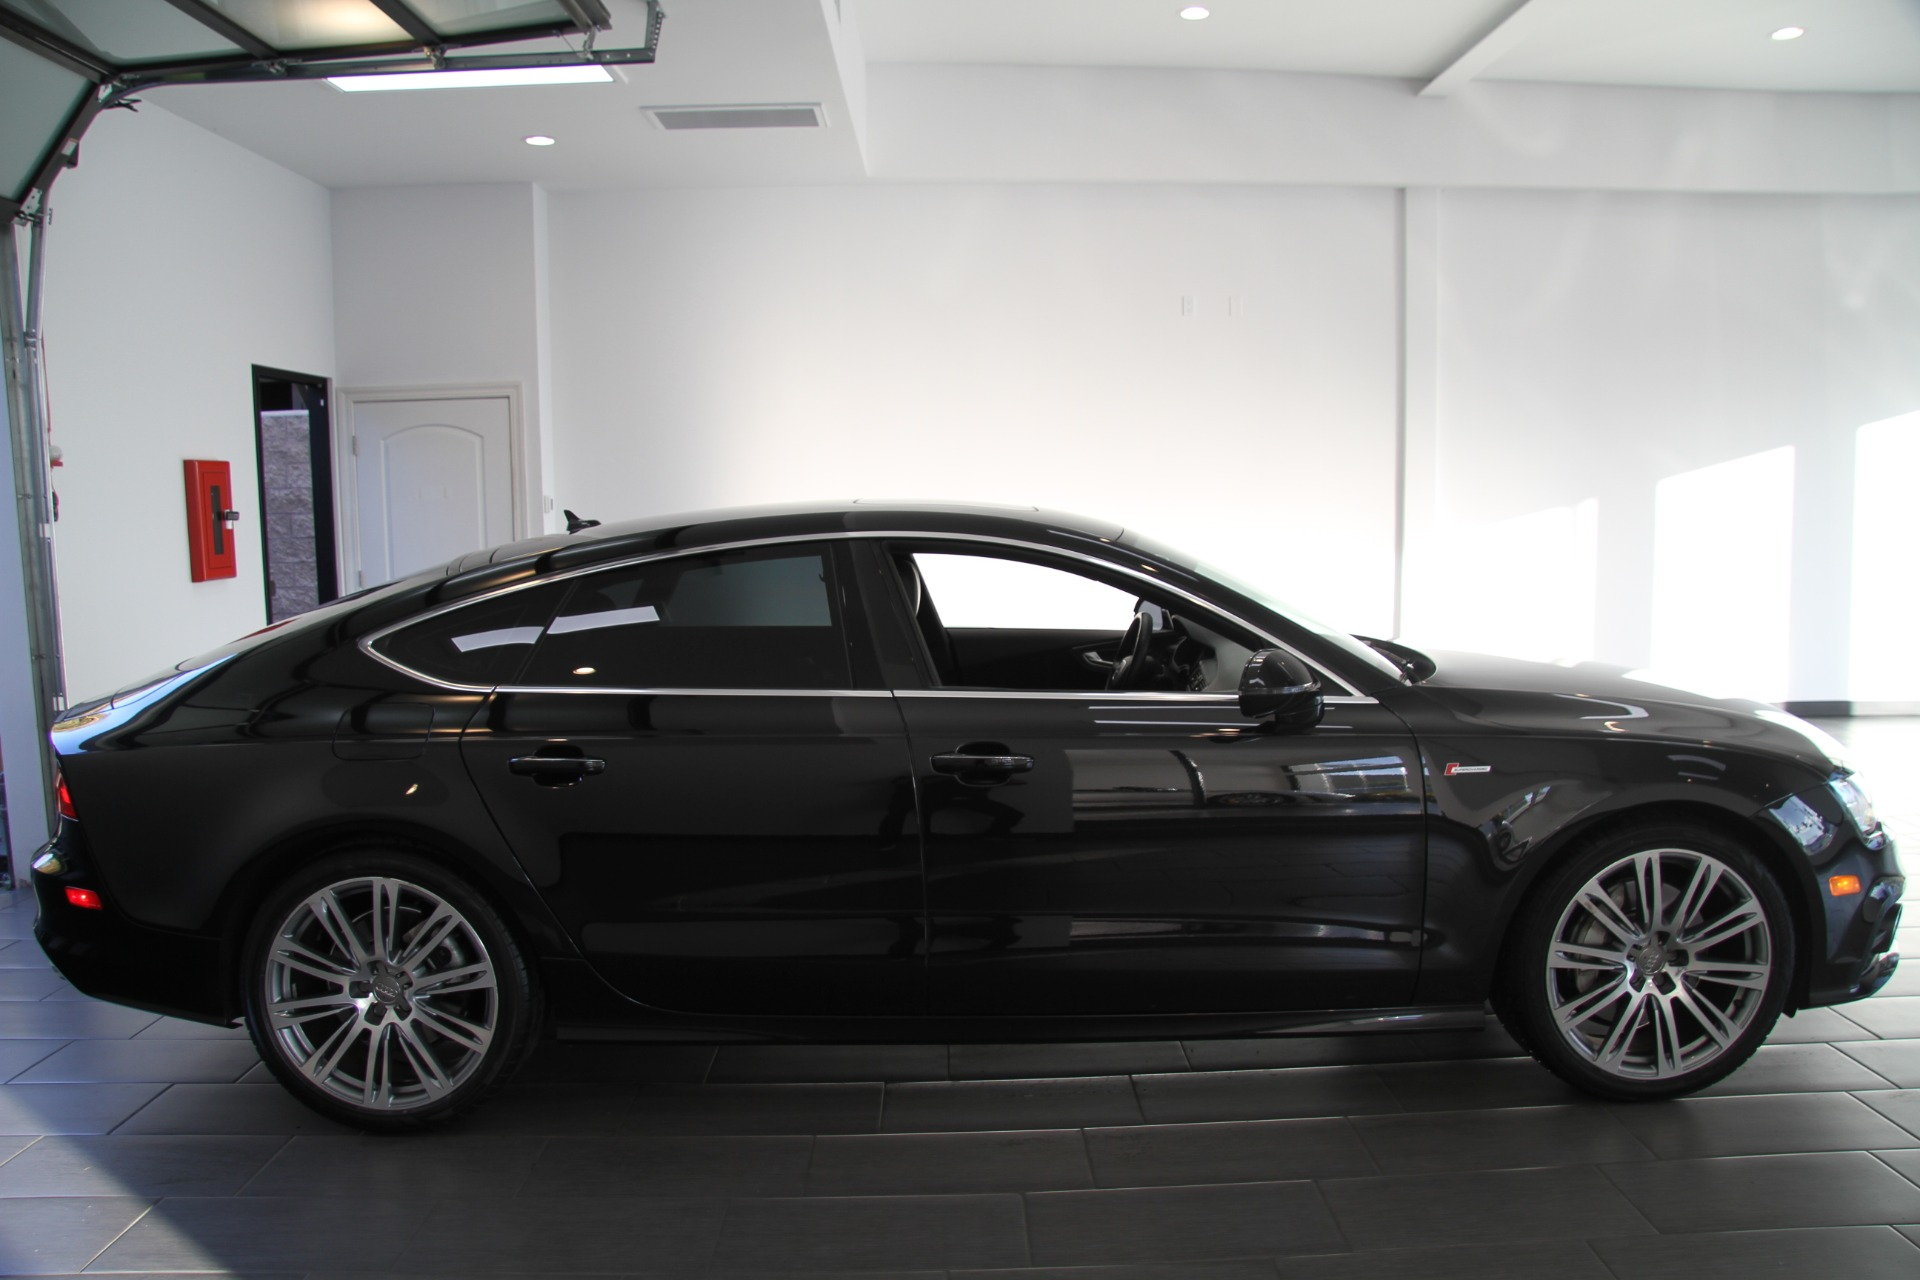 Audi Dealership Near Me >> 2013 Audi A7 3.0T quattro Prestige S-Line Stock # 6106 for sale near Redondo Beach, CA | CA Audi ...